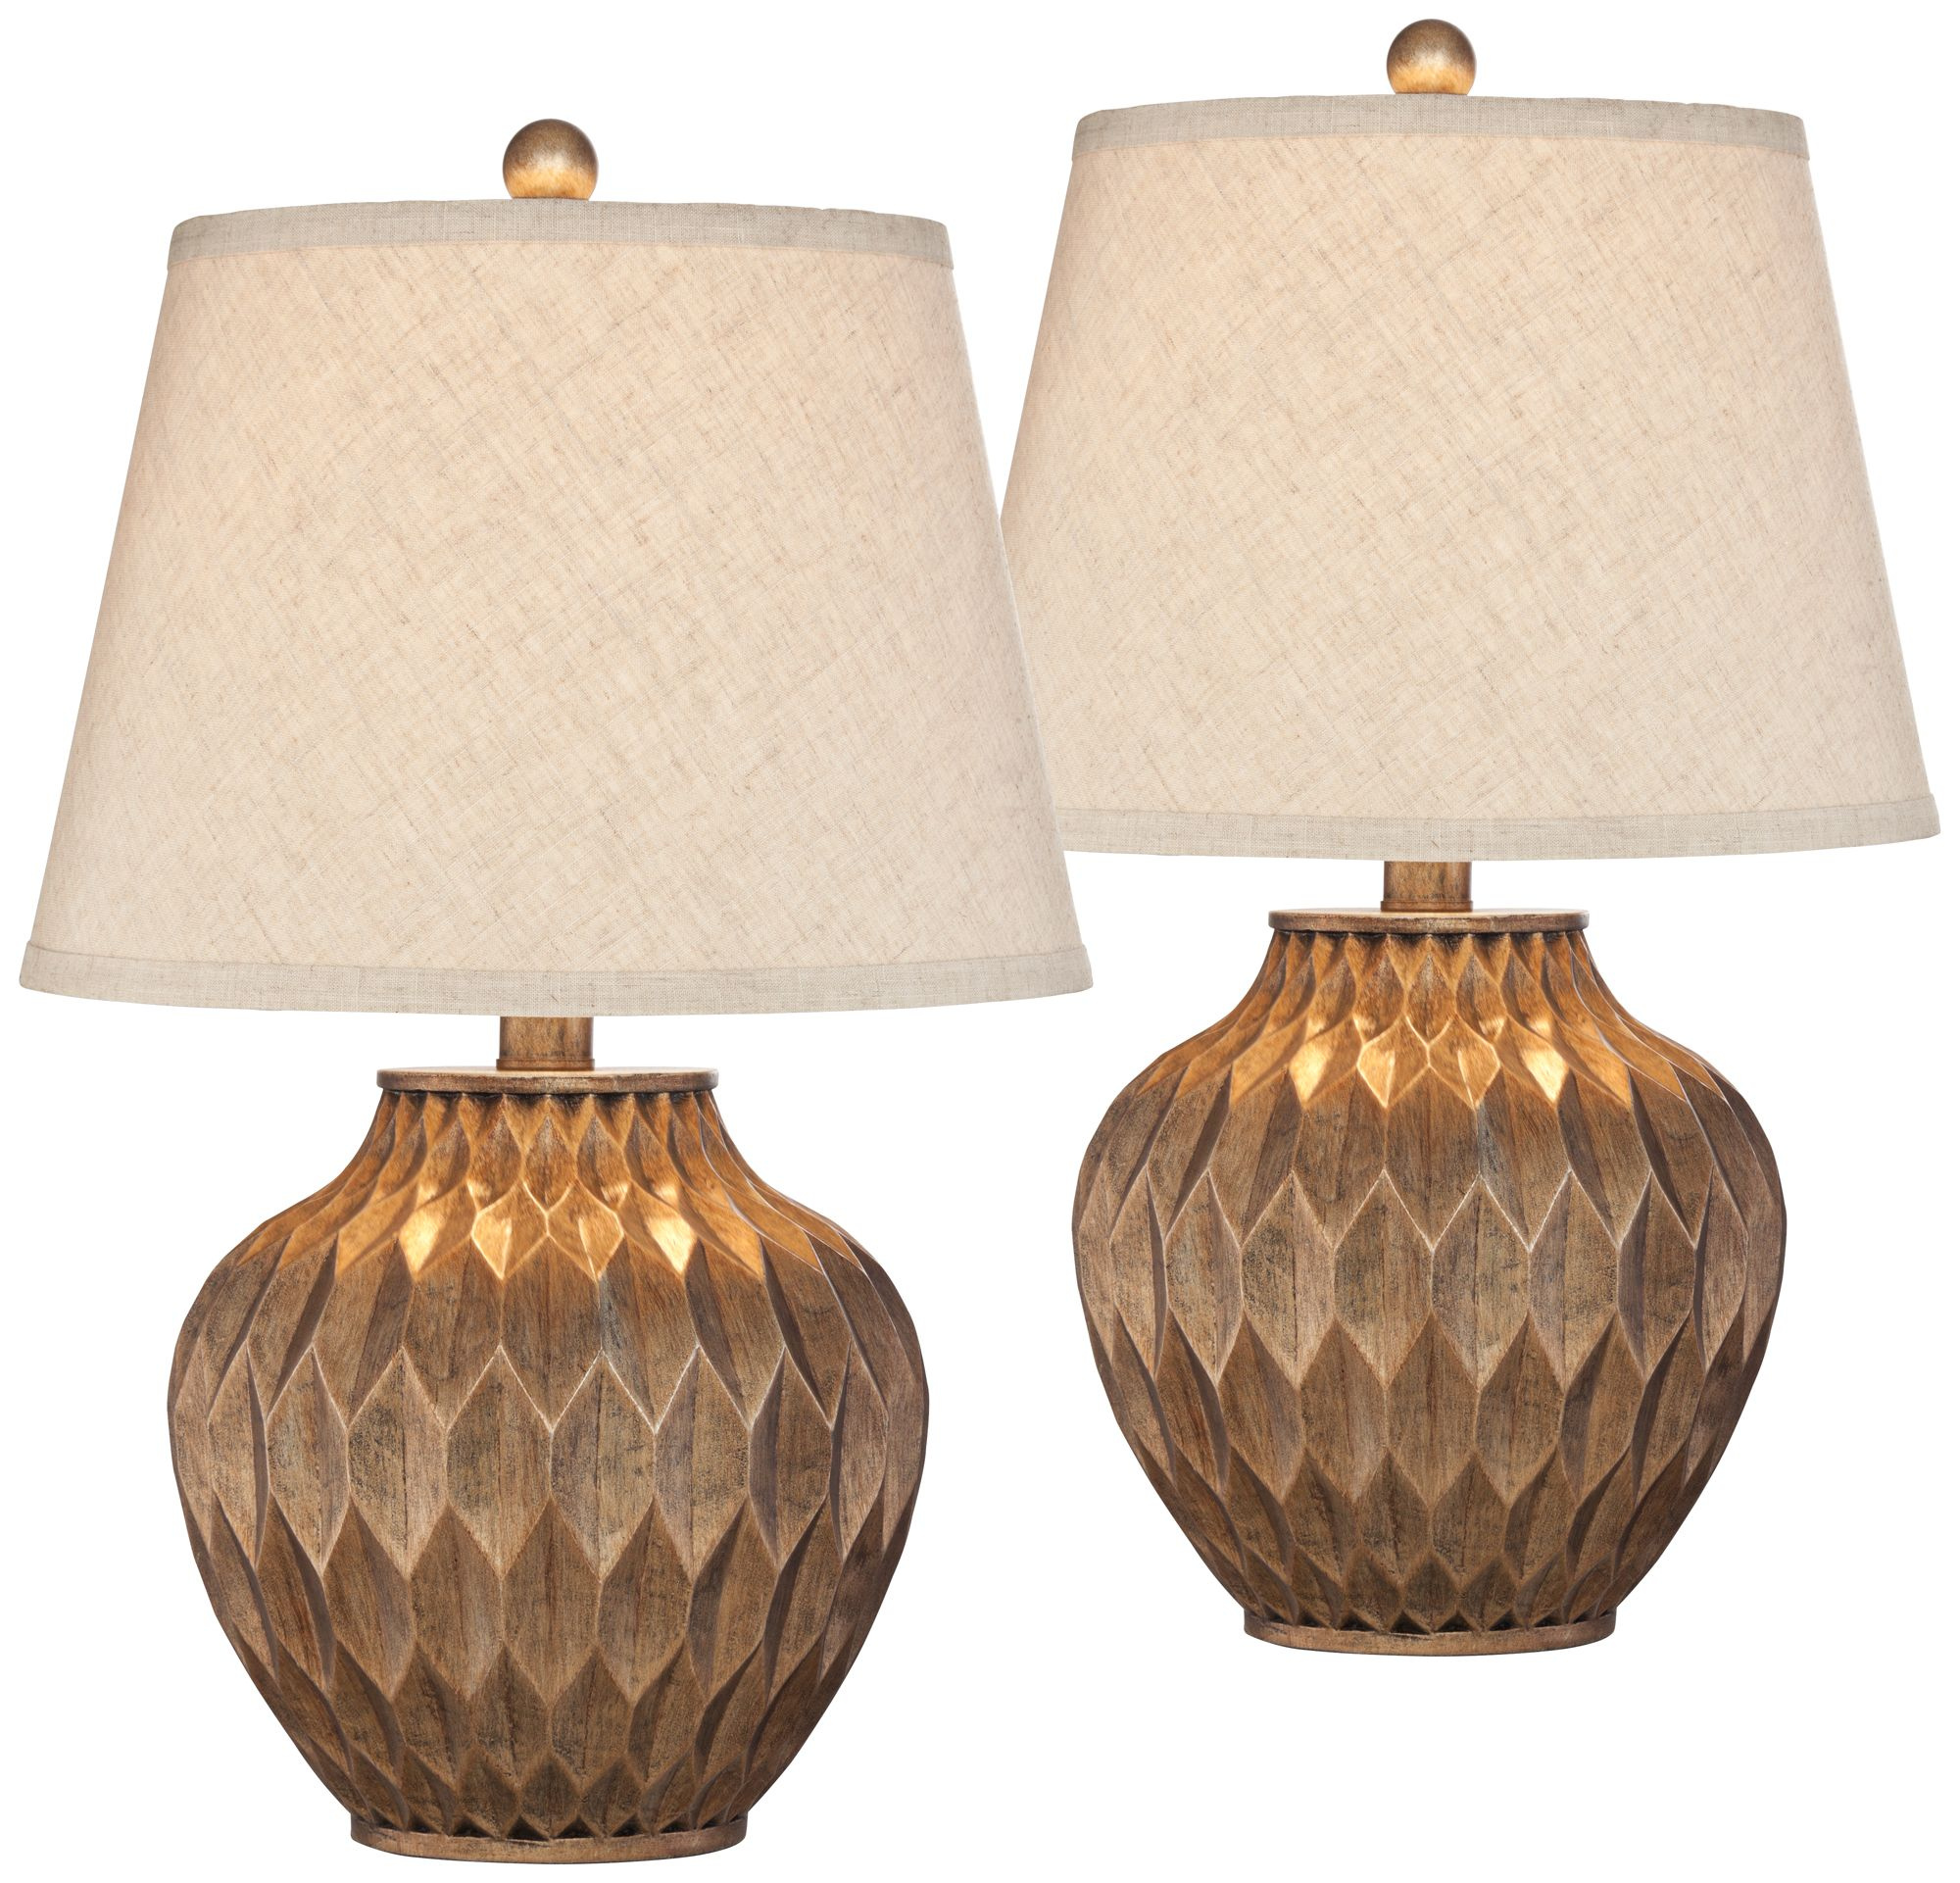 Buckhead Bronze Small Urn Accent Table Lamp Set Of 2